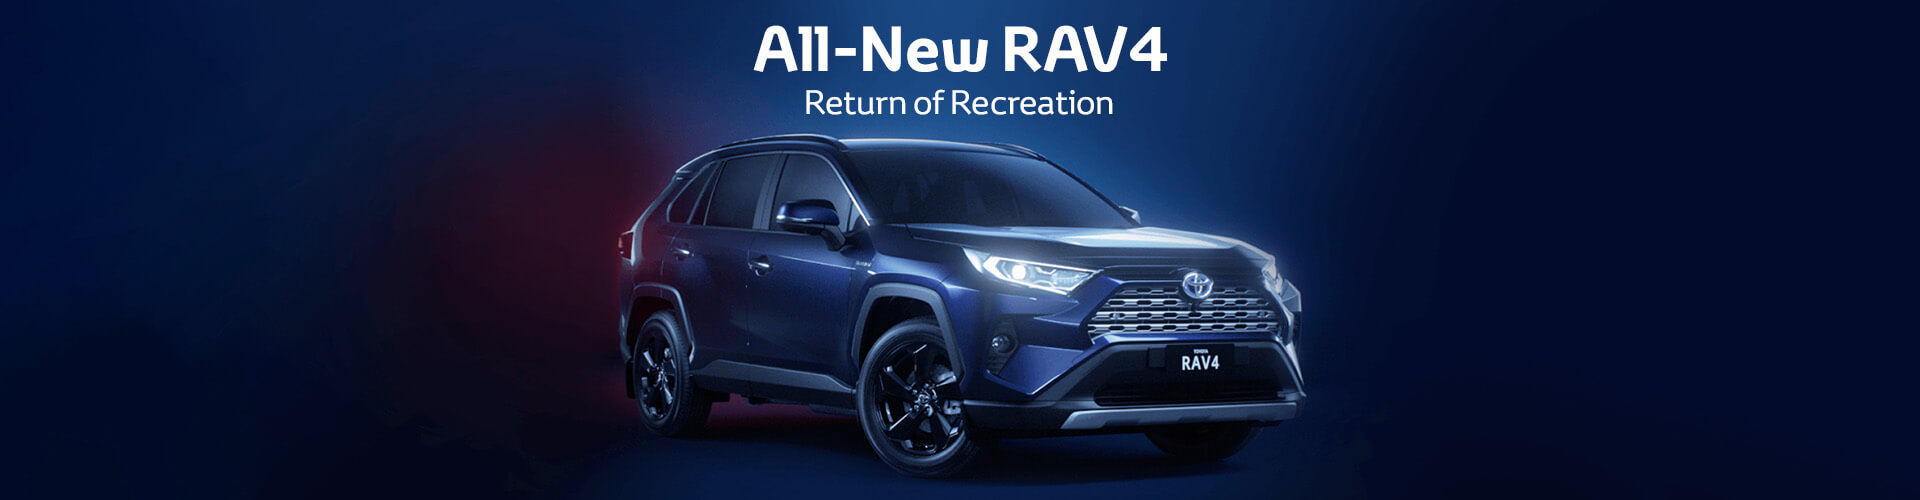 All New RAV4